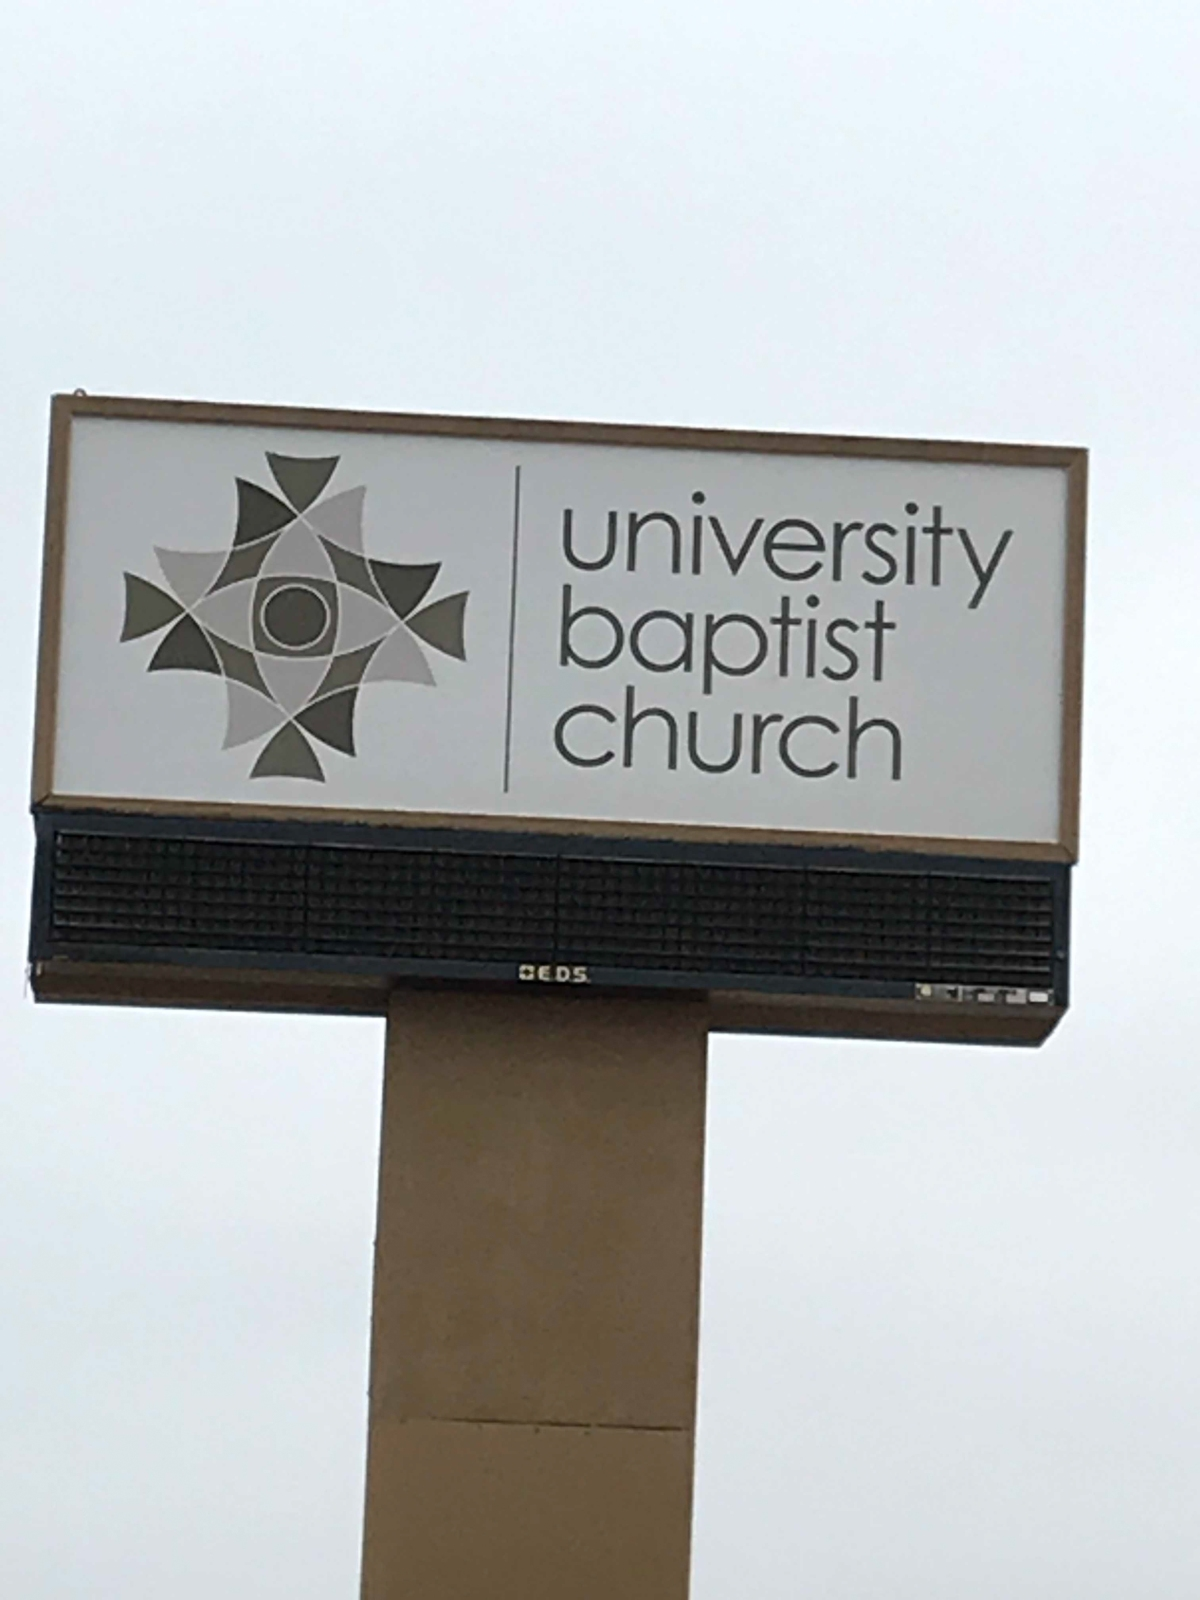 University Baptist Church welcomes students